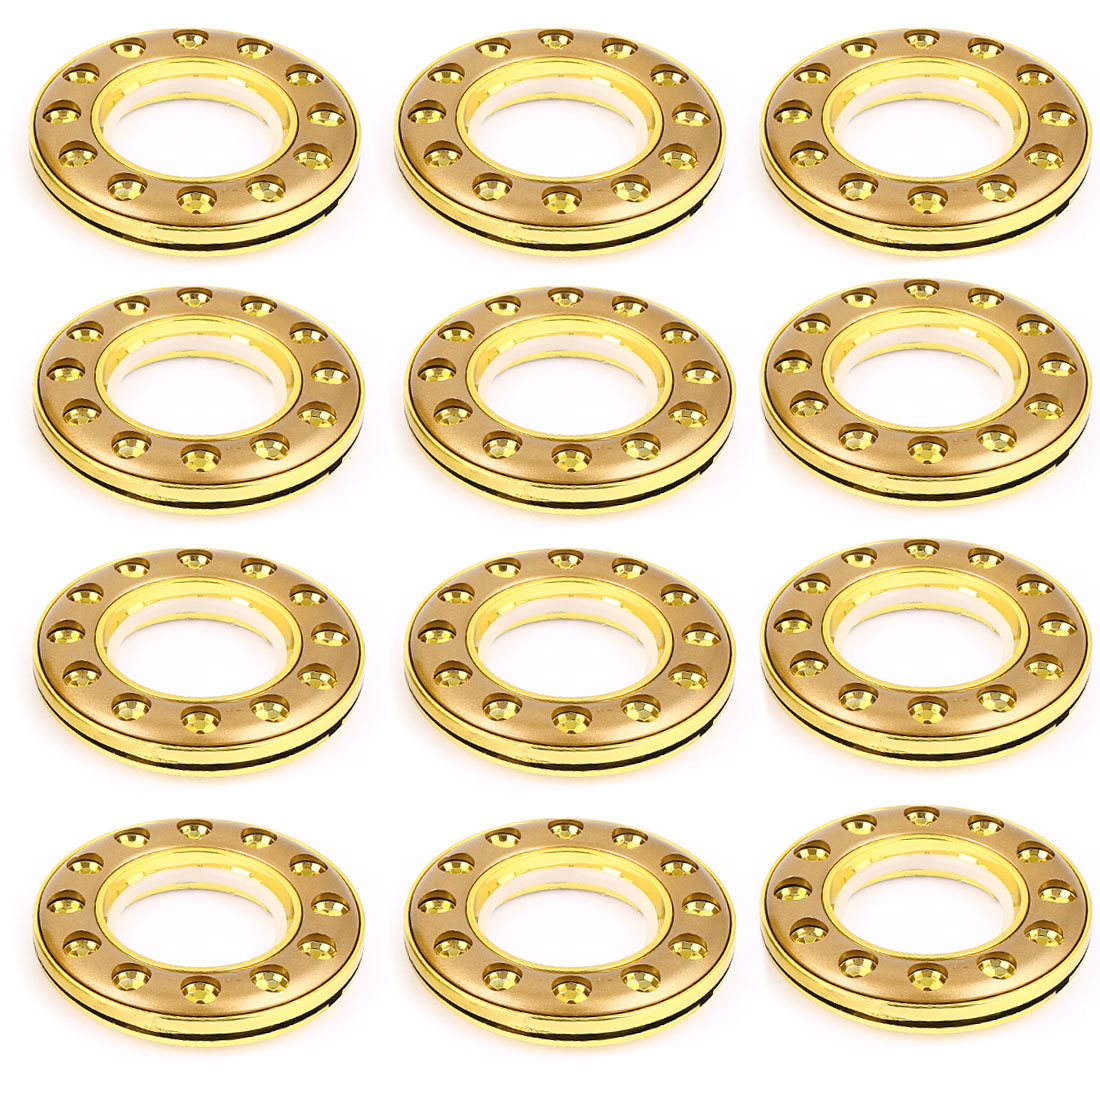 Flower Hole Print Window Curtain Rings Gold Tone 41mm Inner Dia 12 Pcs